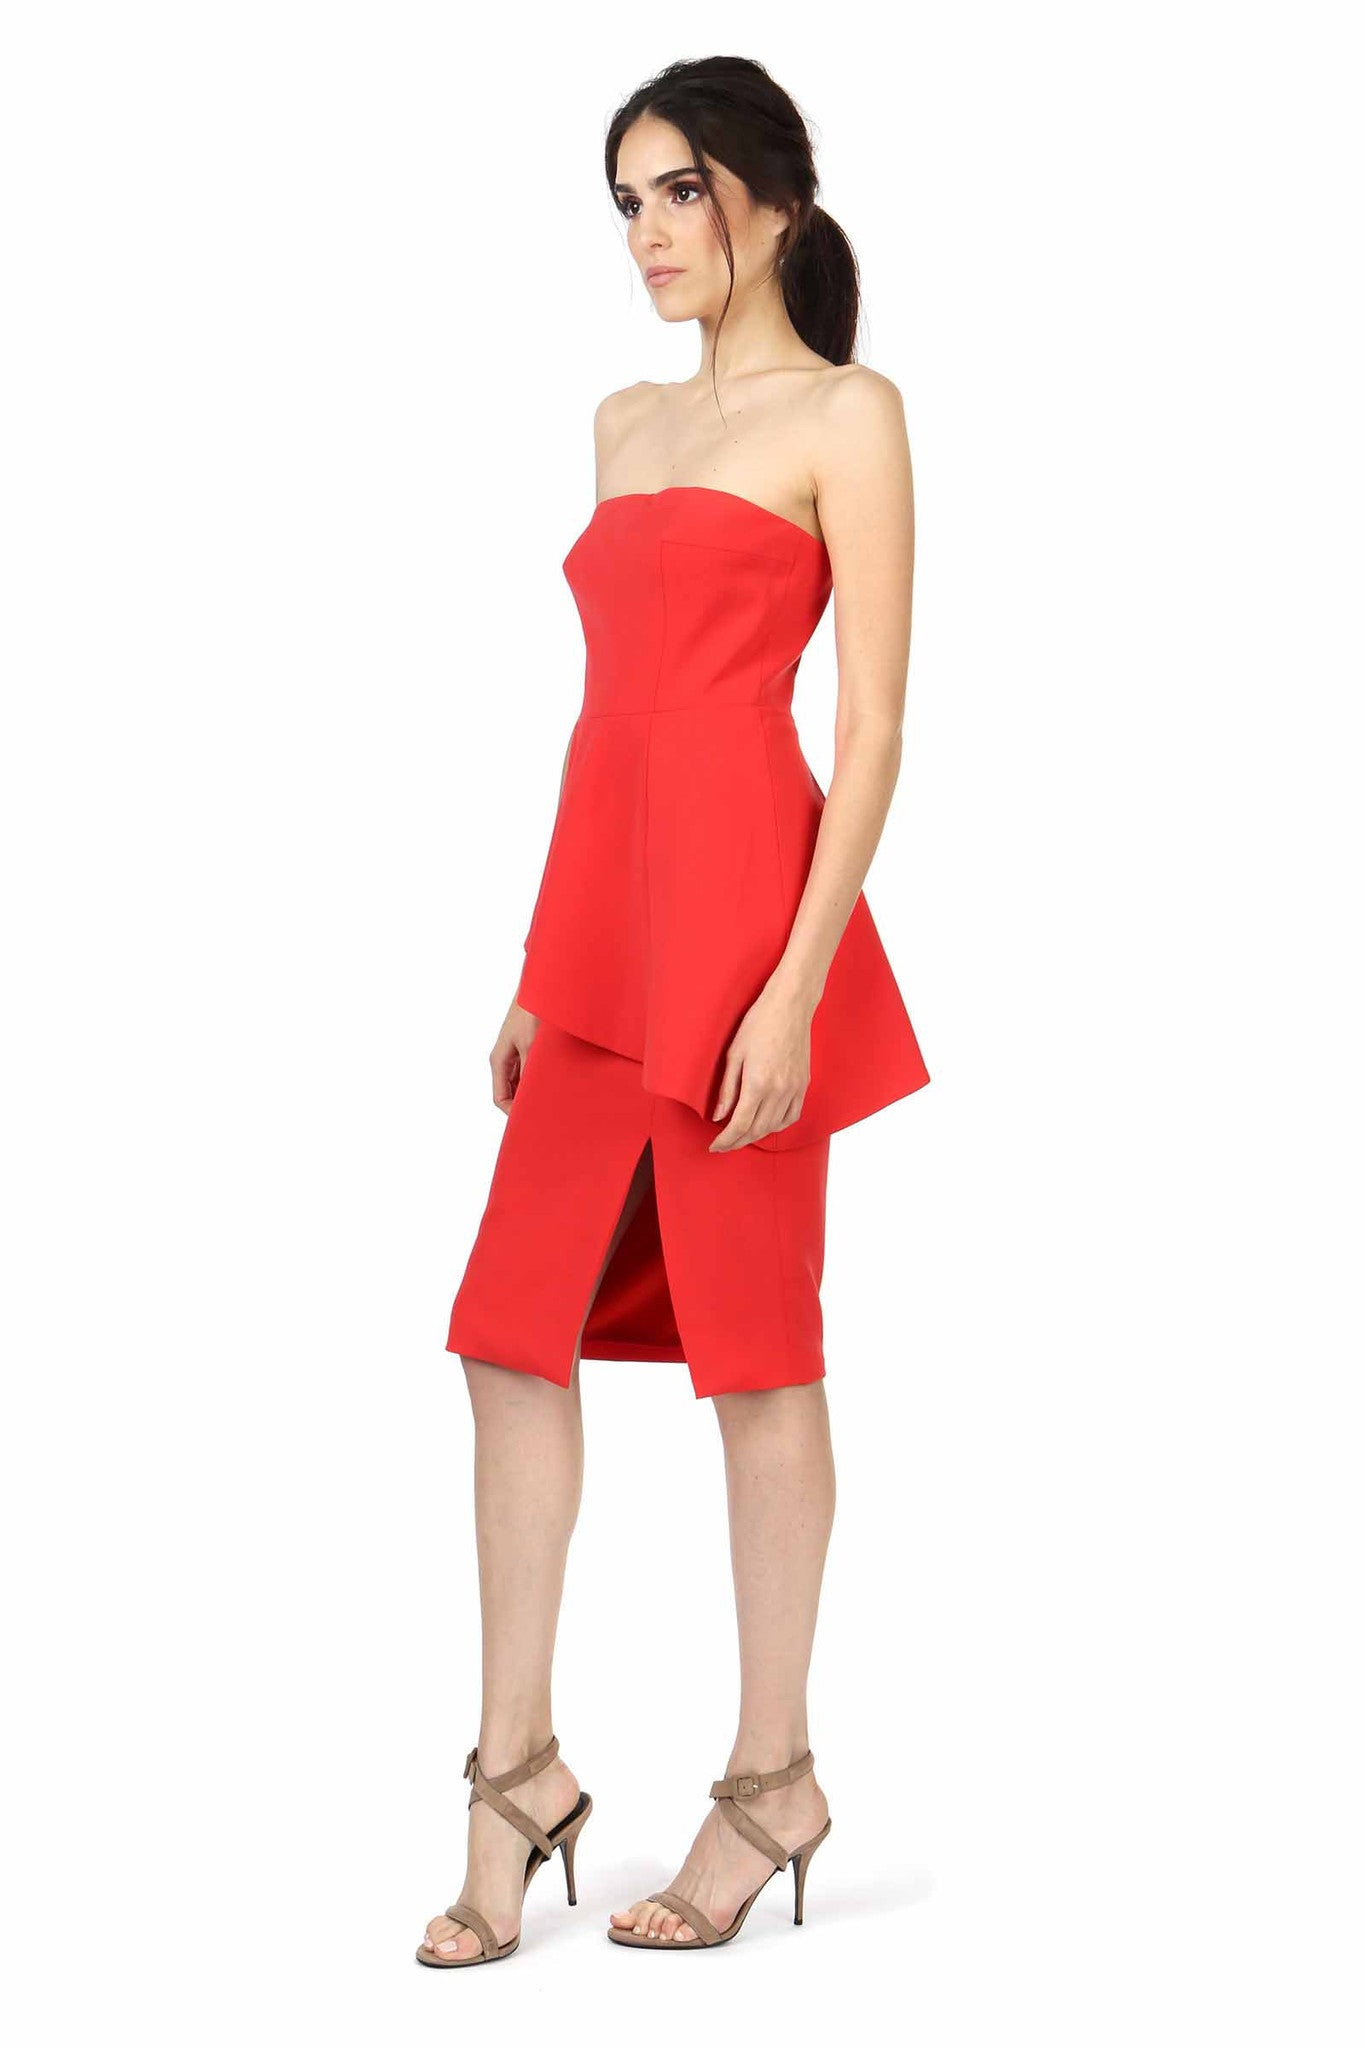 AINGE CORAL RED PEPLUM DRESS